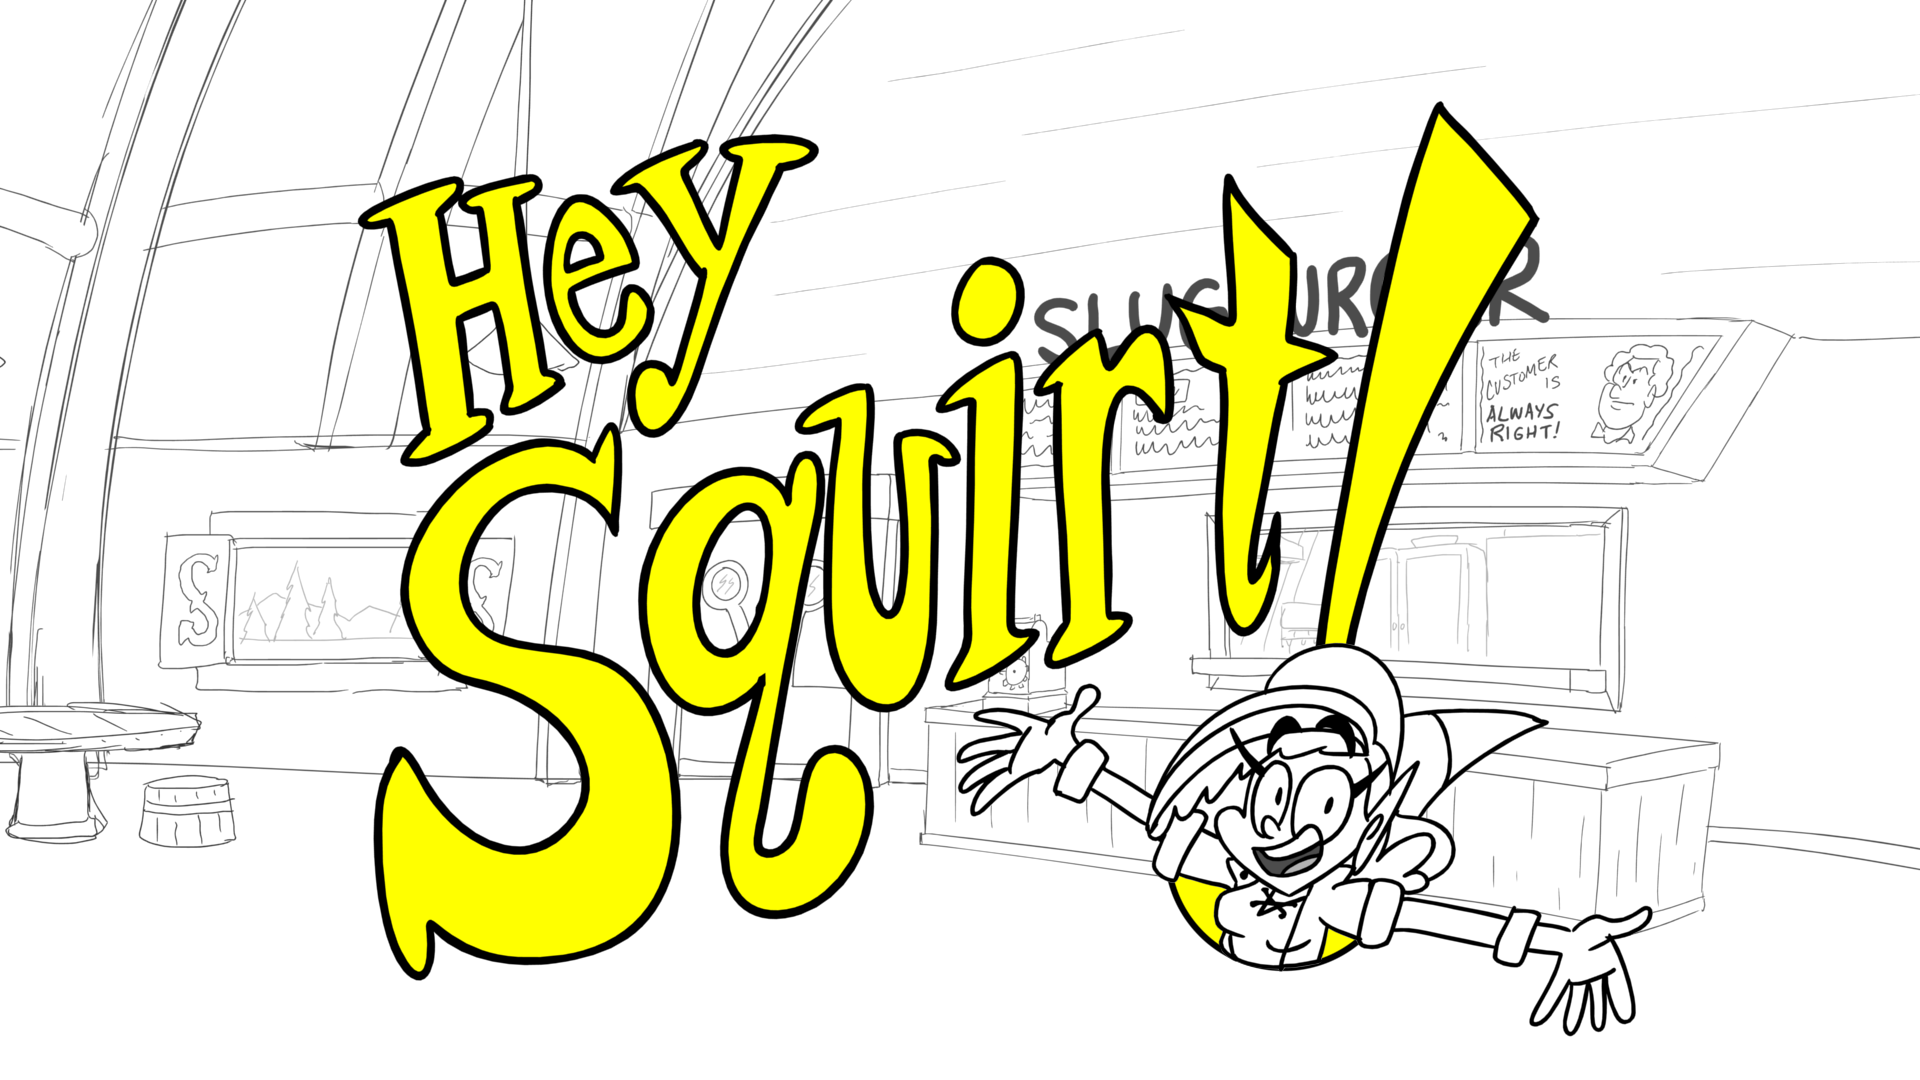 692-04 Hey Squirt logo with Witchy copy.png